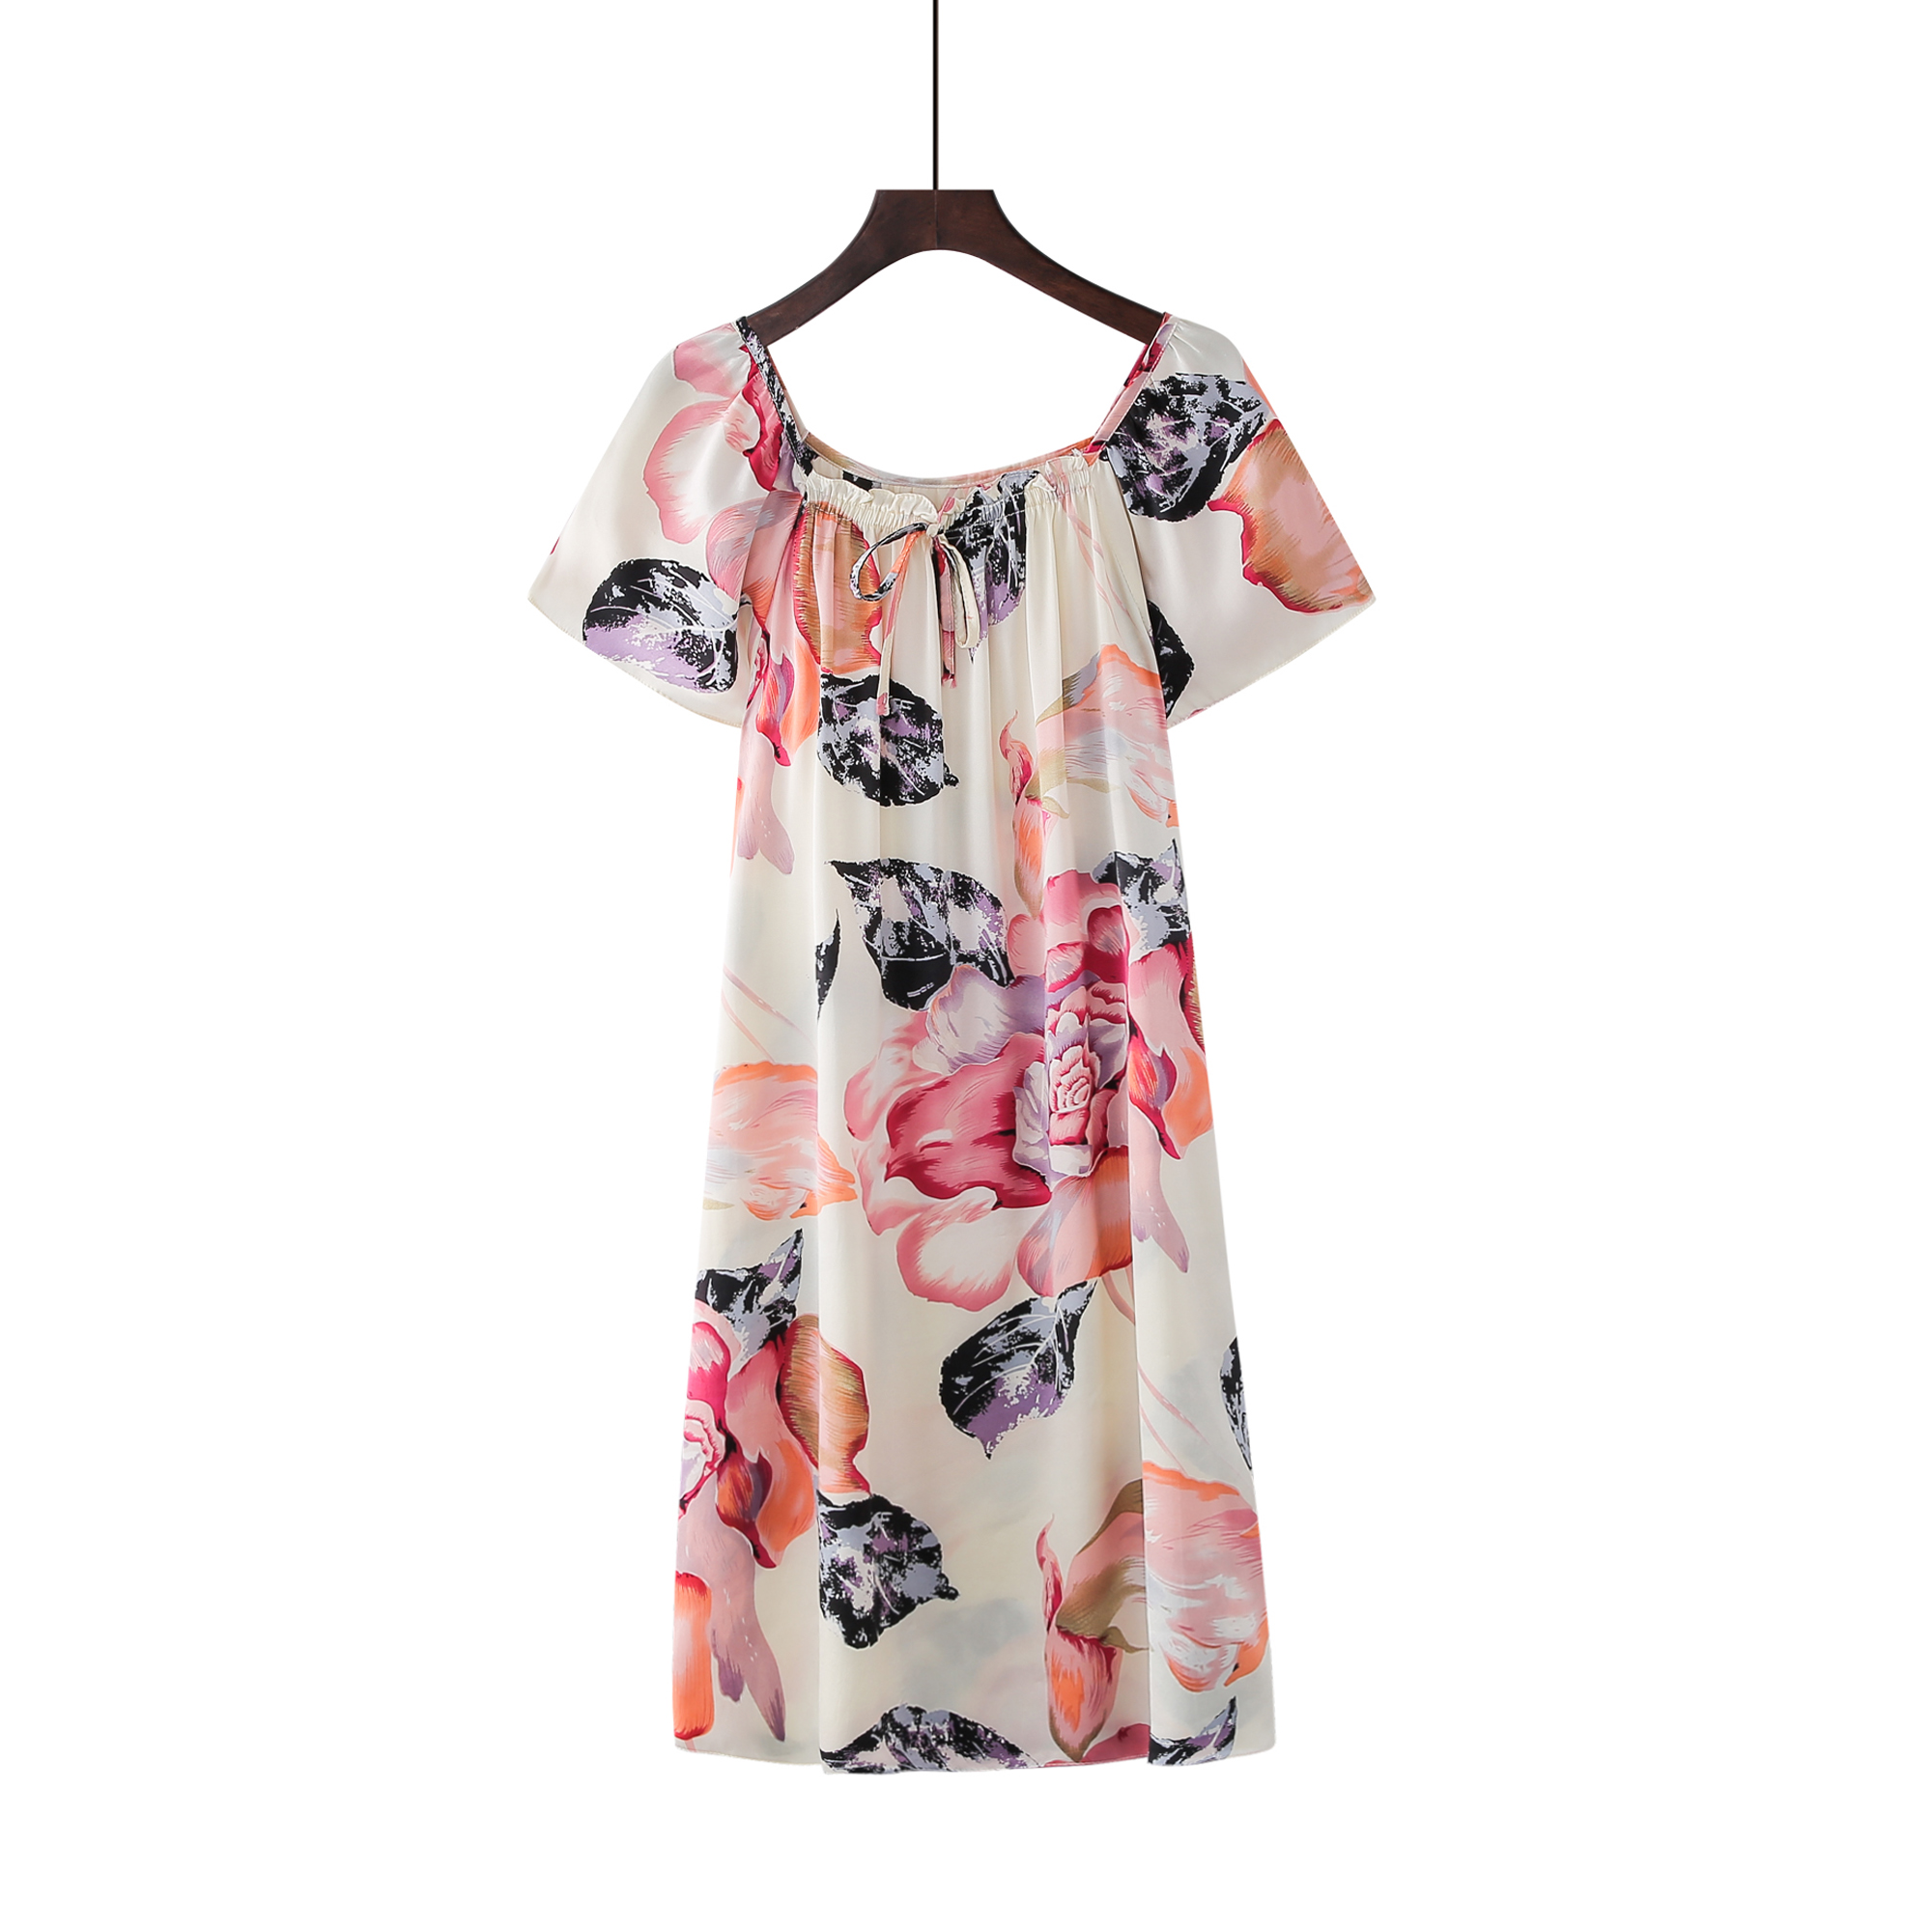 Free shipping 100% Pure Mulberry Floral Silk Nightgown Classic Nightwear Soft Sleepwear Summer Dress Multicolor Free Size